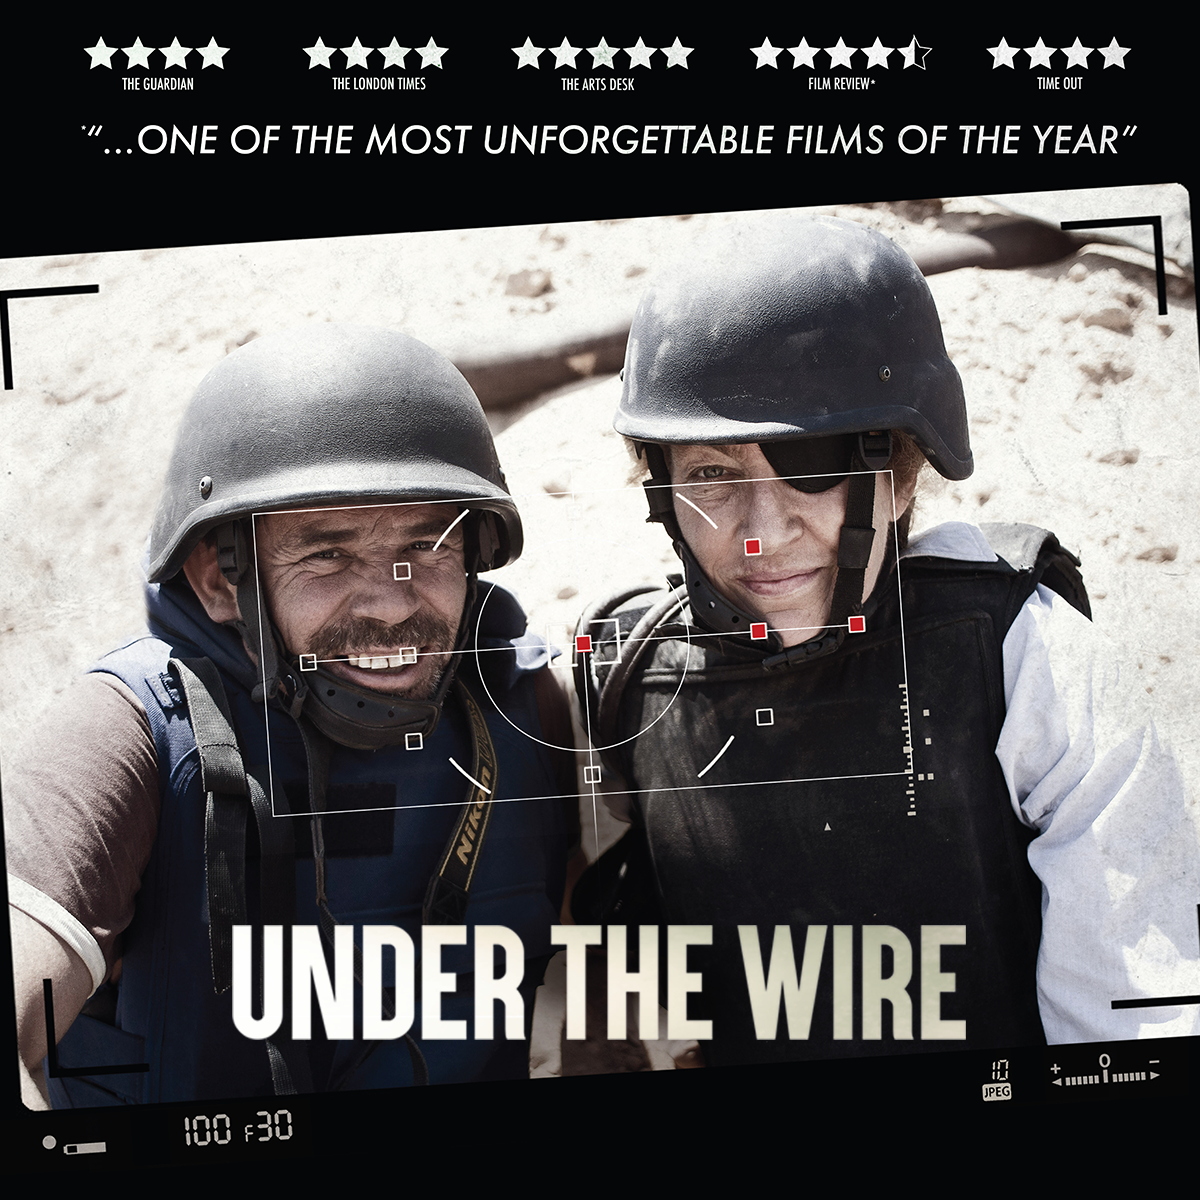 Under_The_Wire_1200x1200_1.png